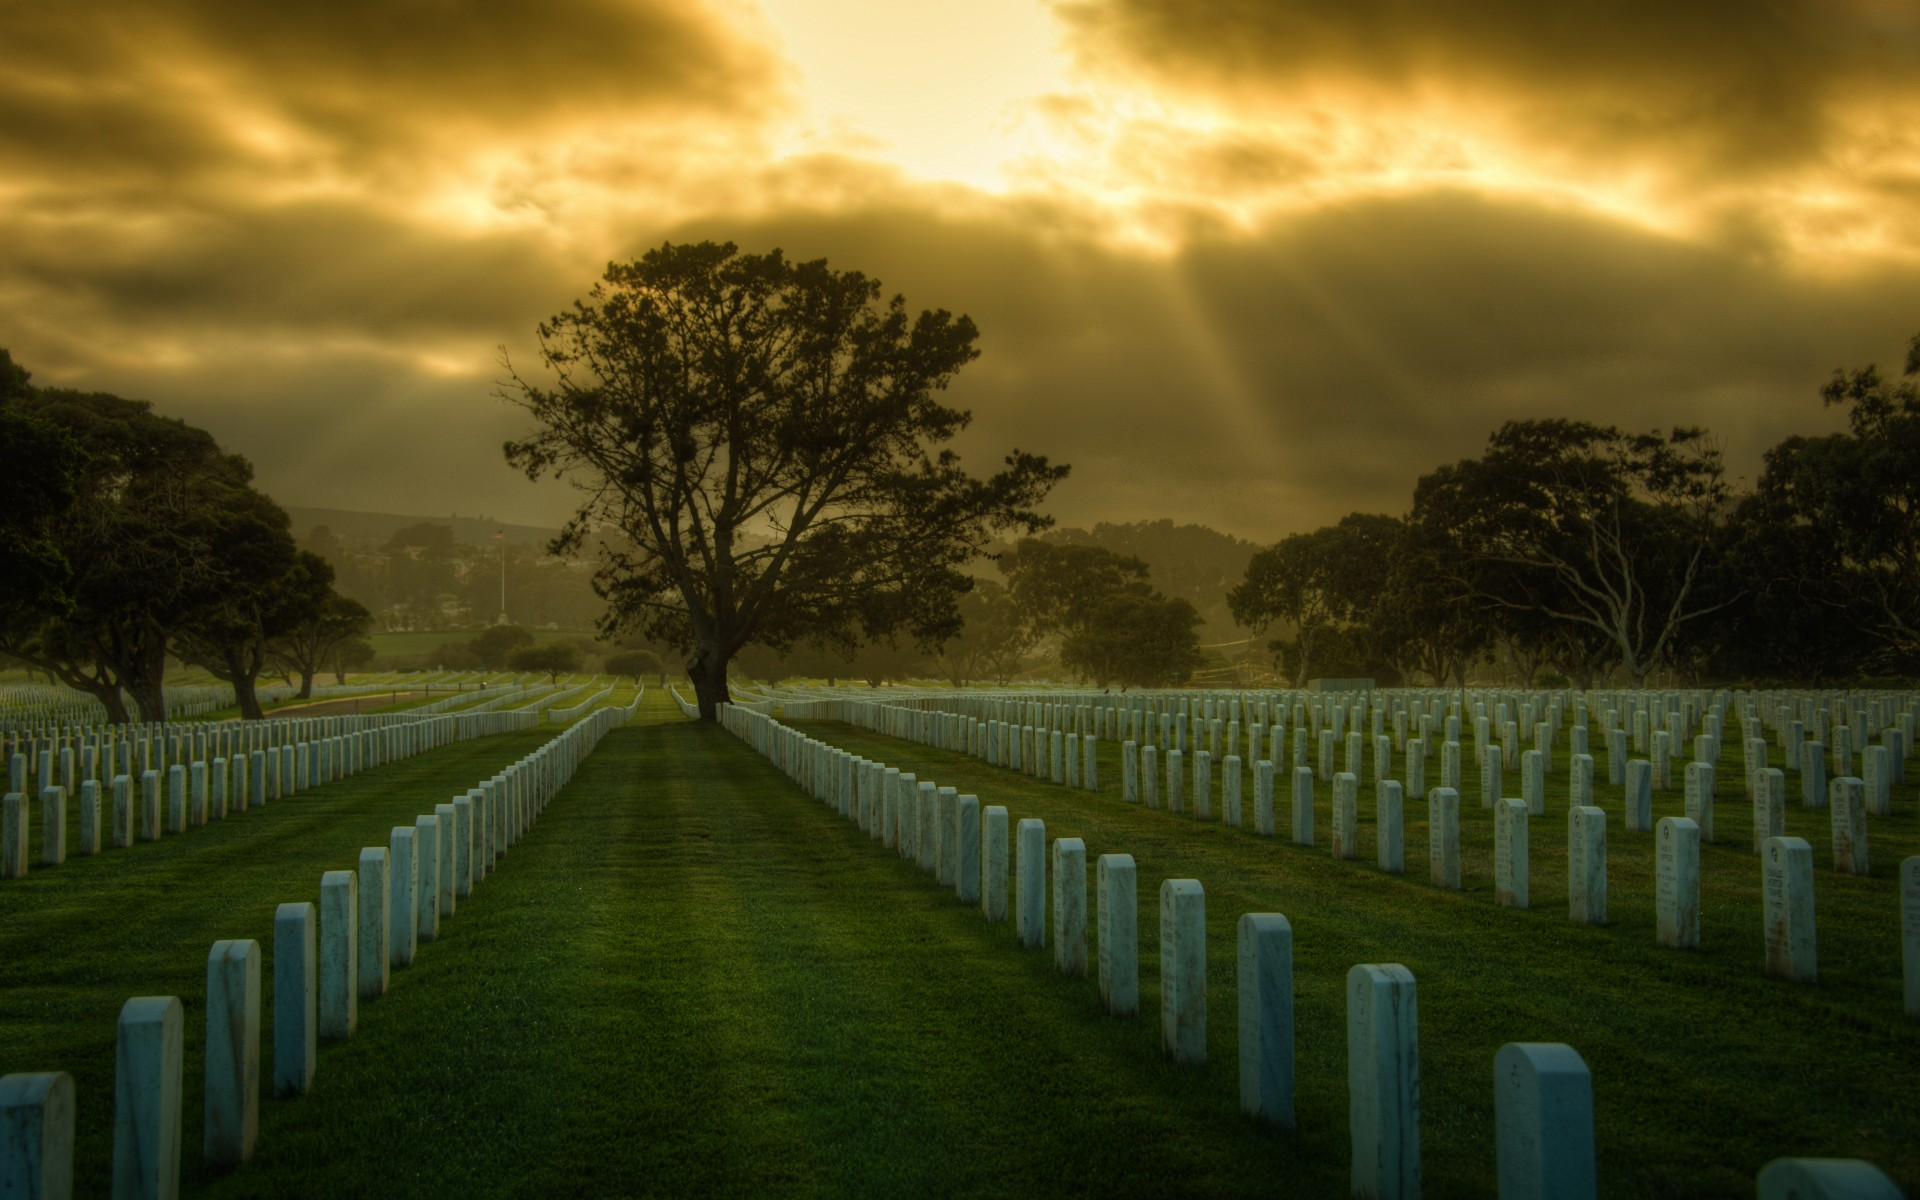 United States San Francisco cemetery USA military wallpaper background 1920x1200